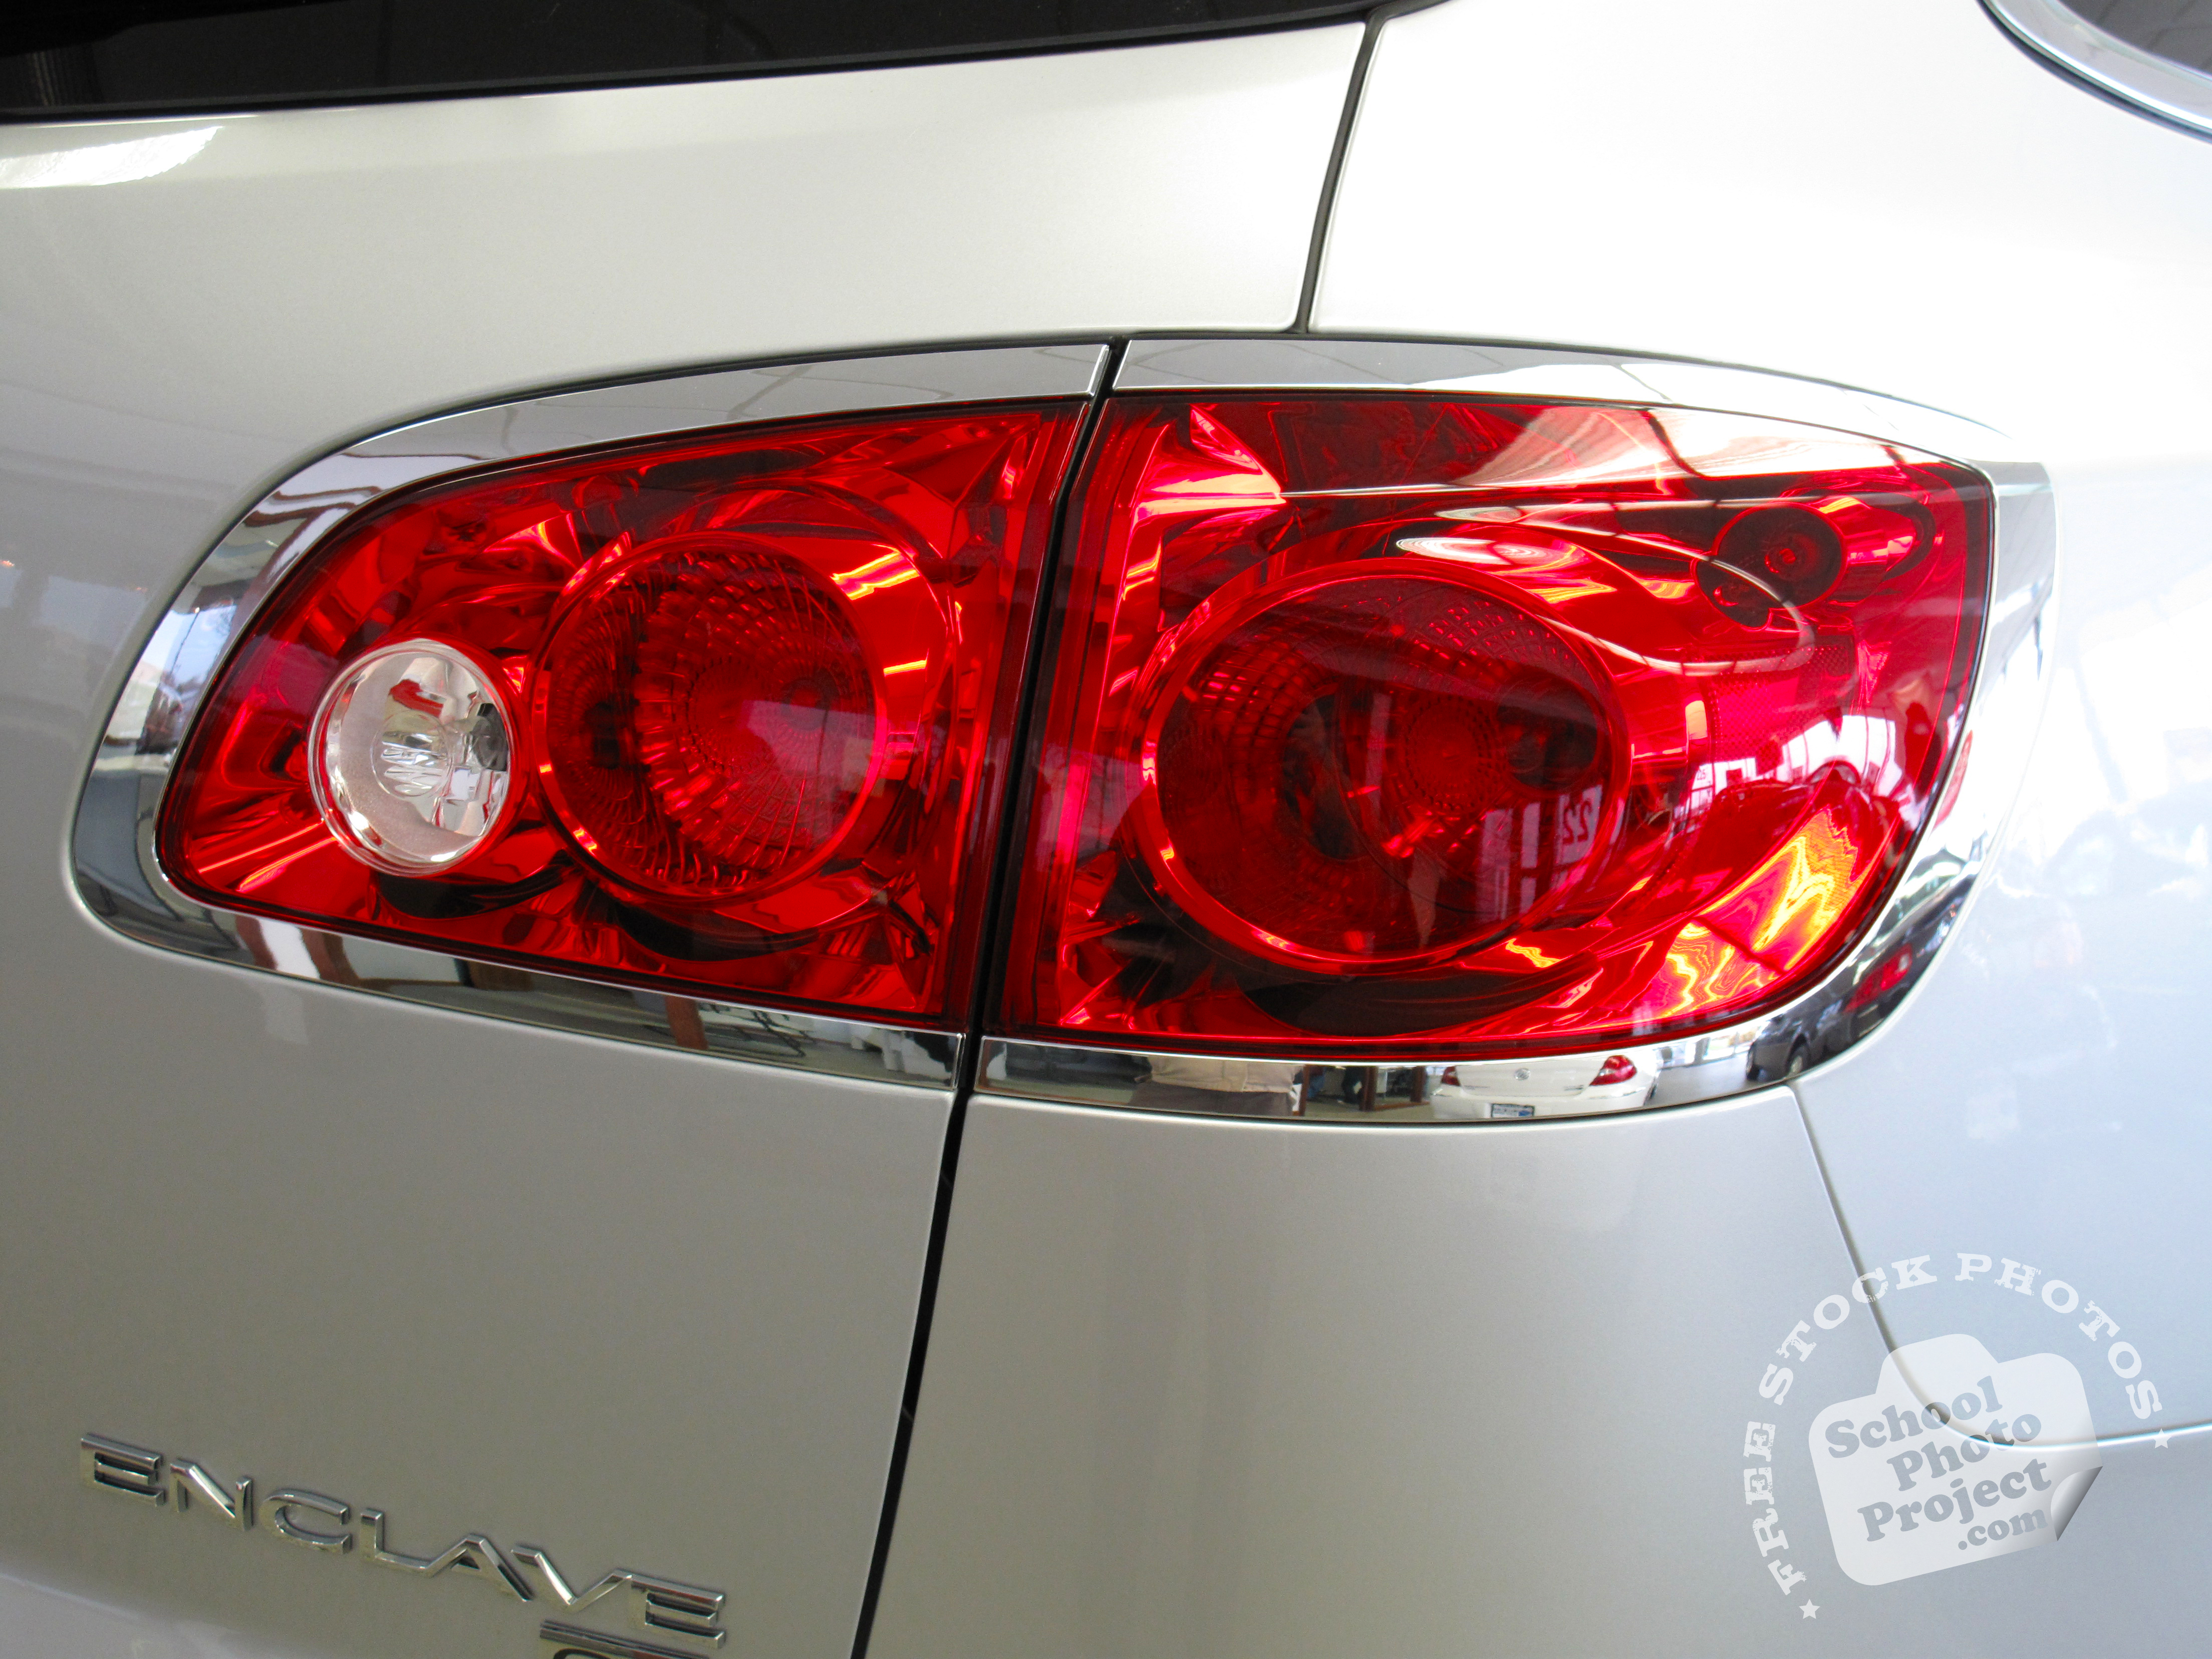 Tail Light, FREE Stock Photo, Image, Picture: Buick ...